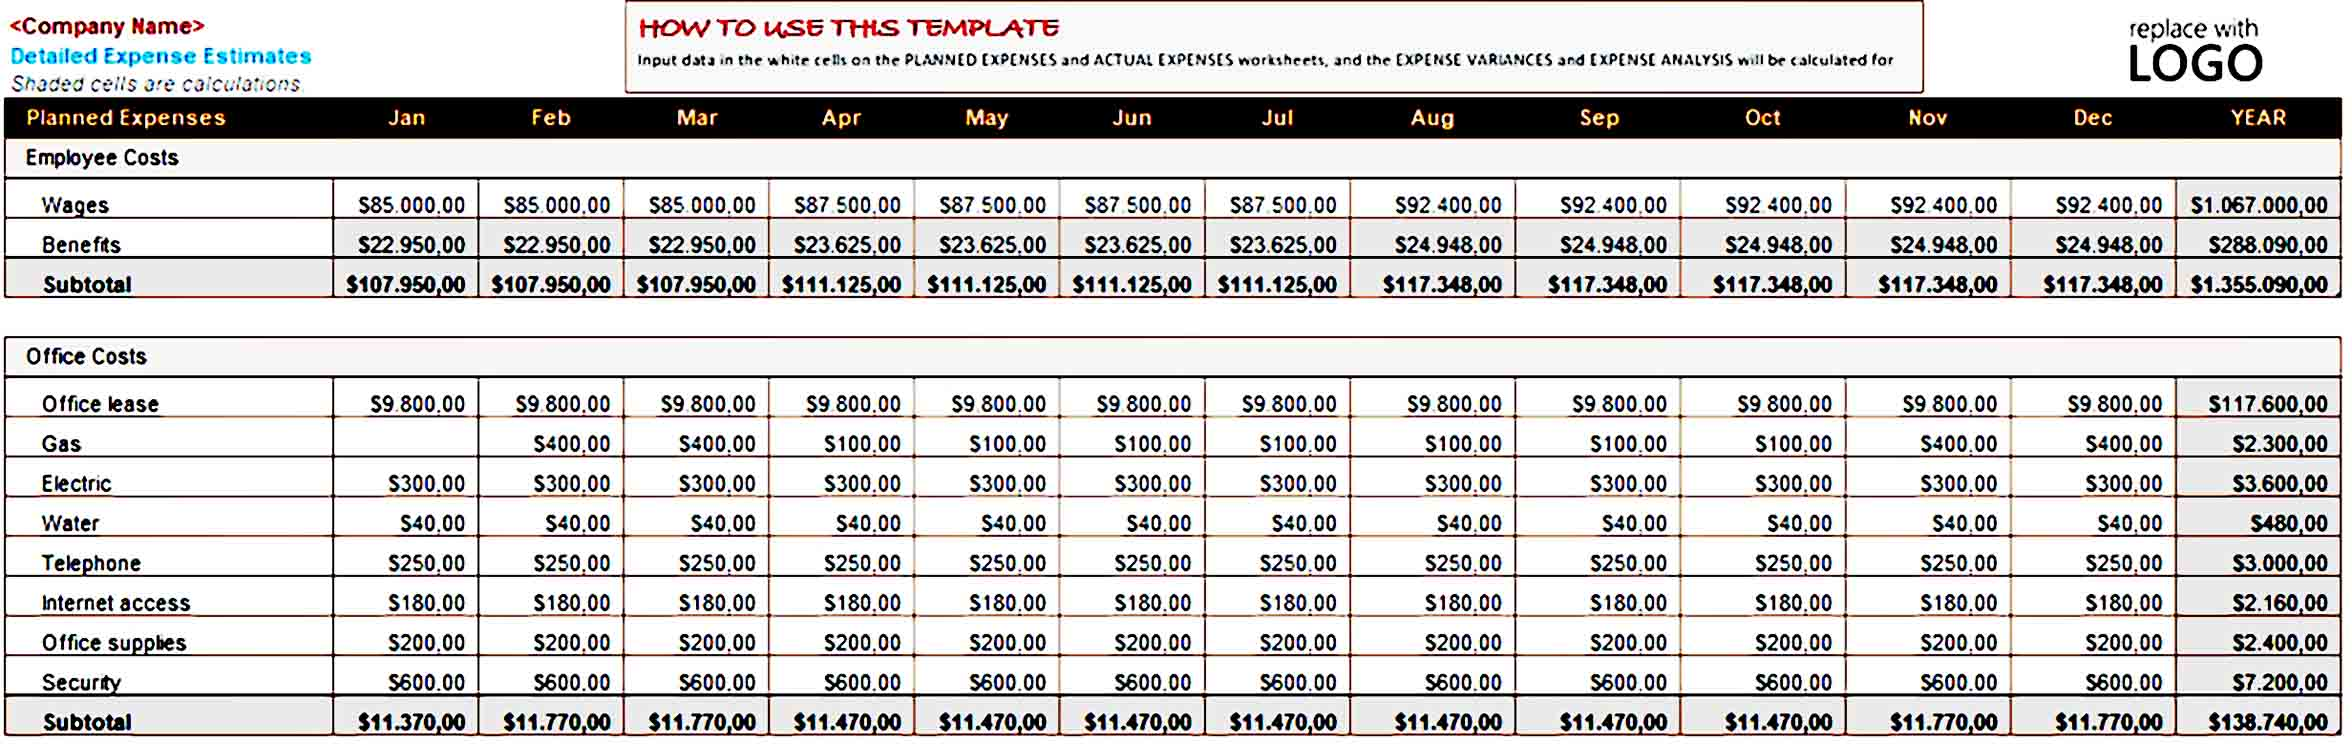 Business Expense Budget Template Excel